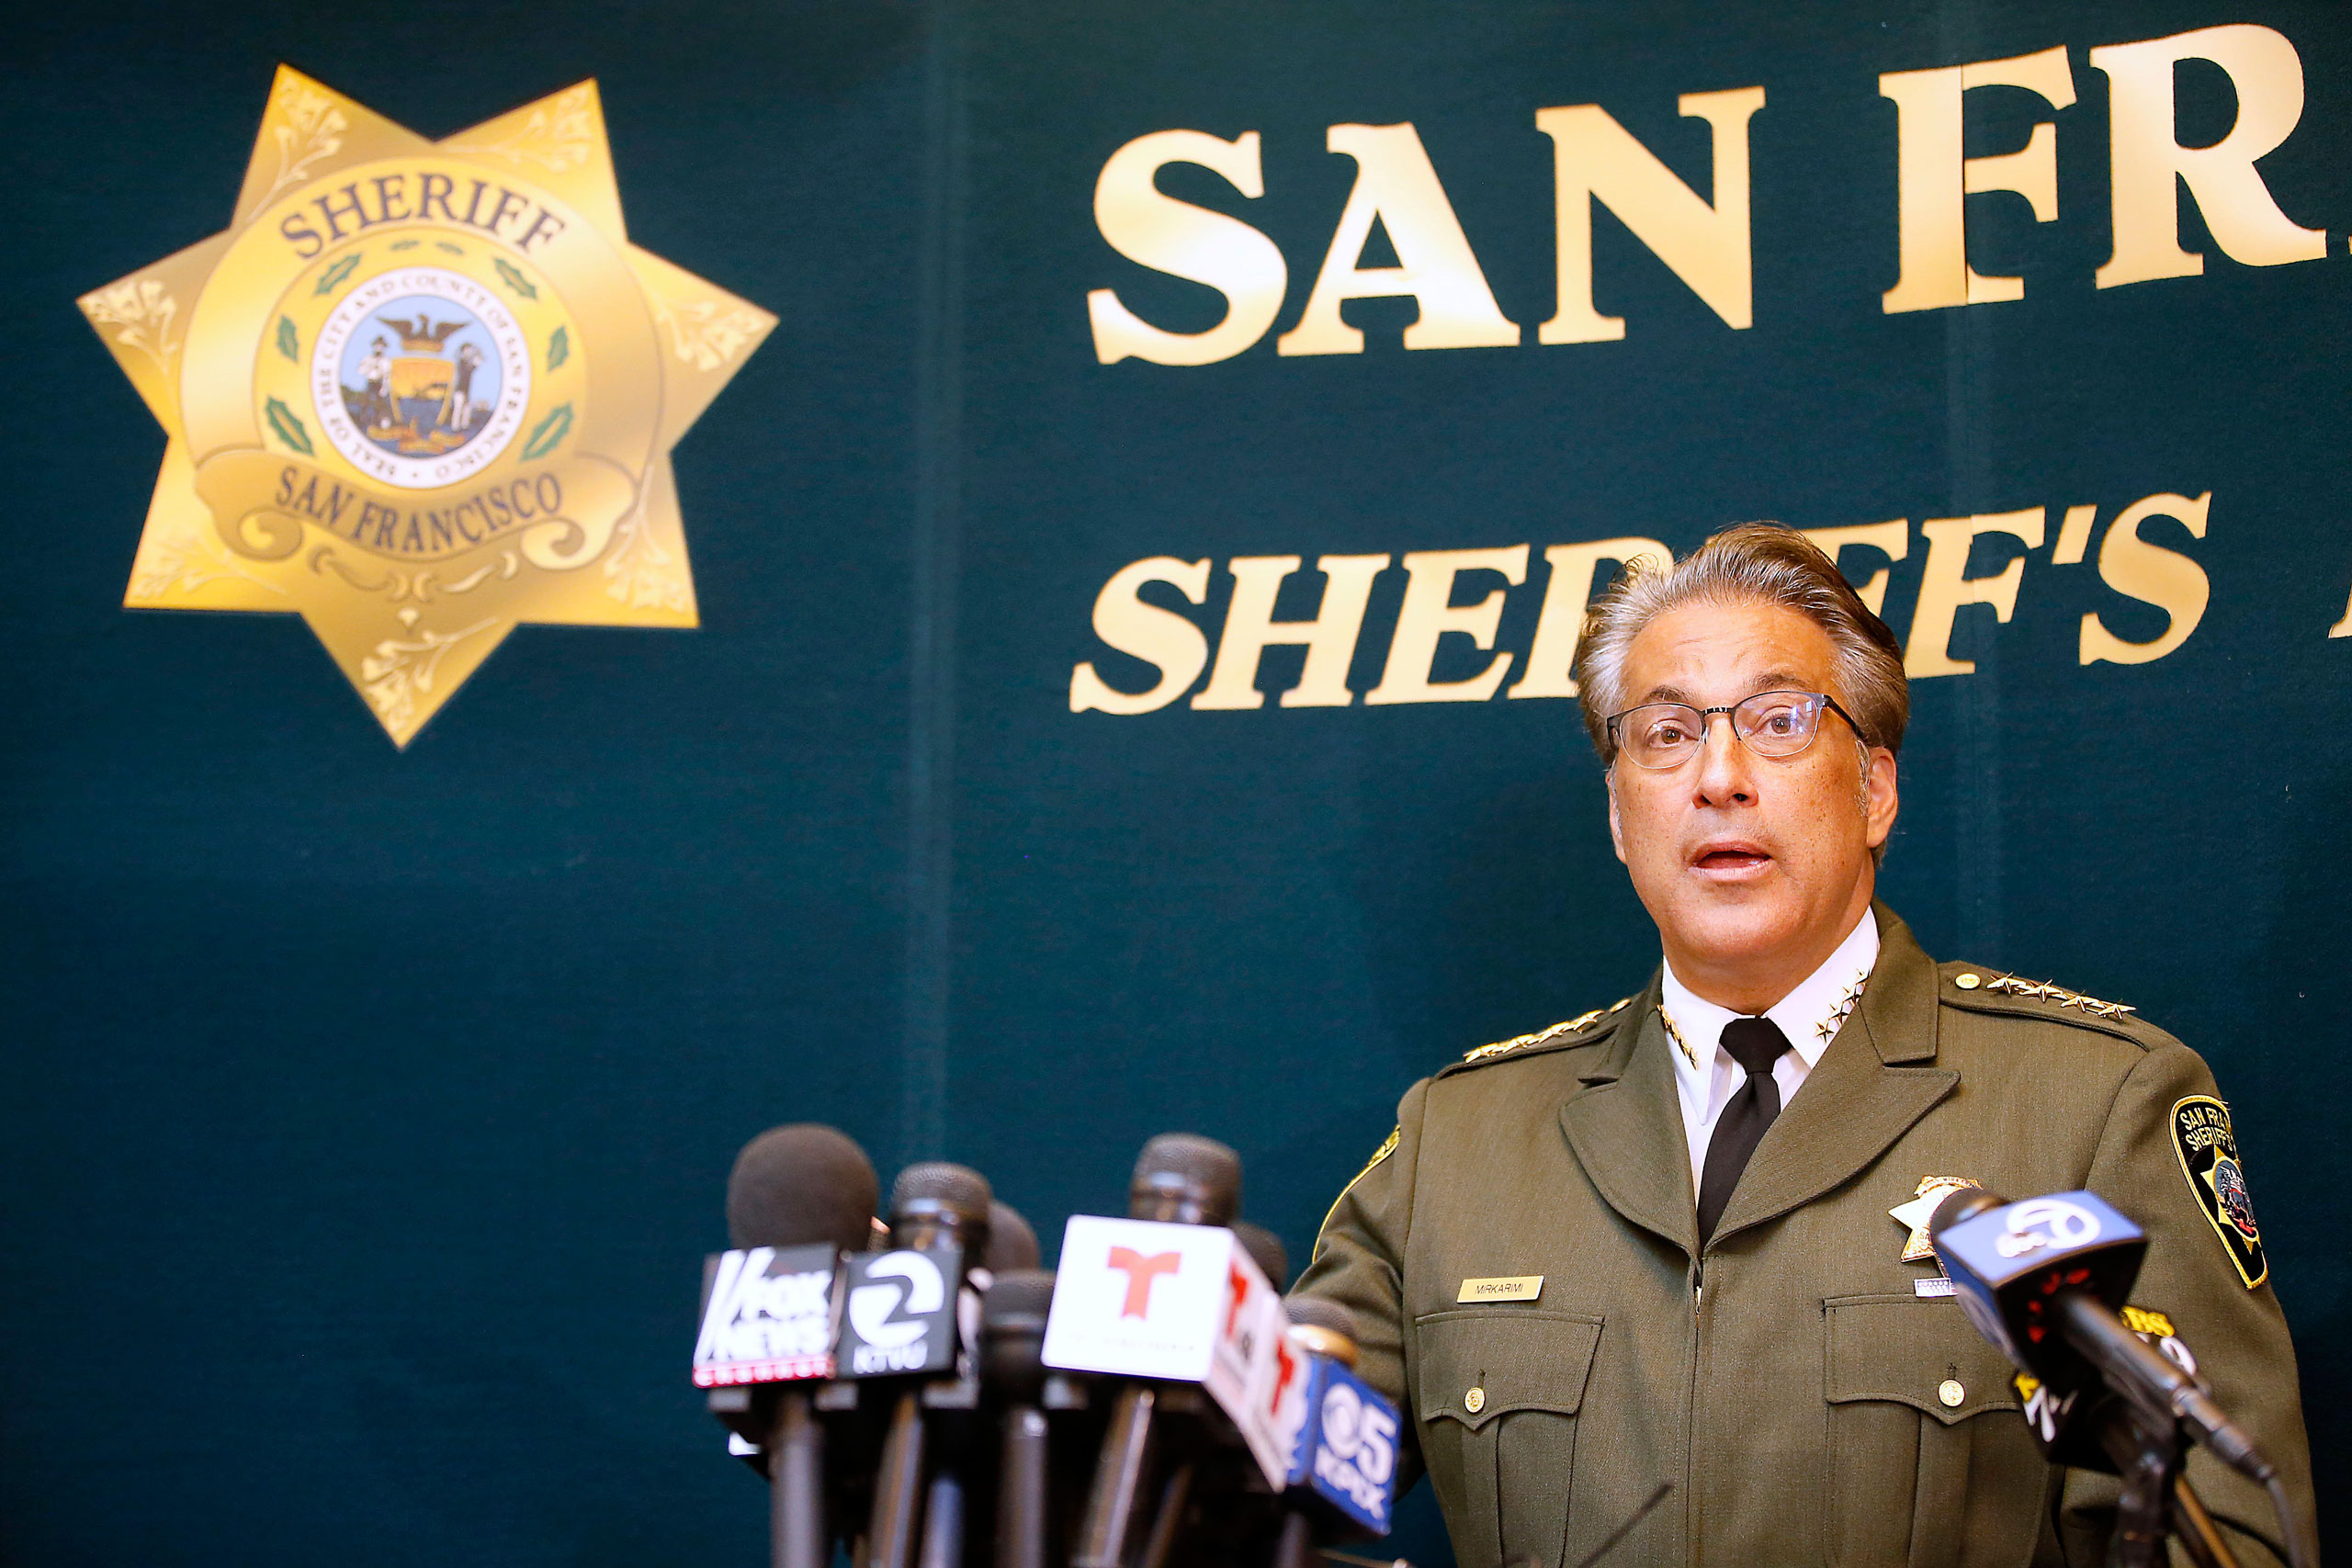 San Francisco Sheriff Ross Mirkarimi fields questions during a news conference in San Francisco on July 10, 2015.